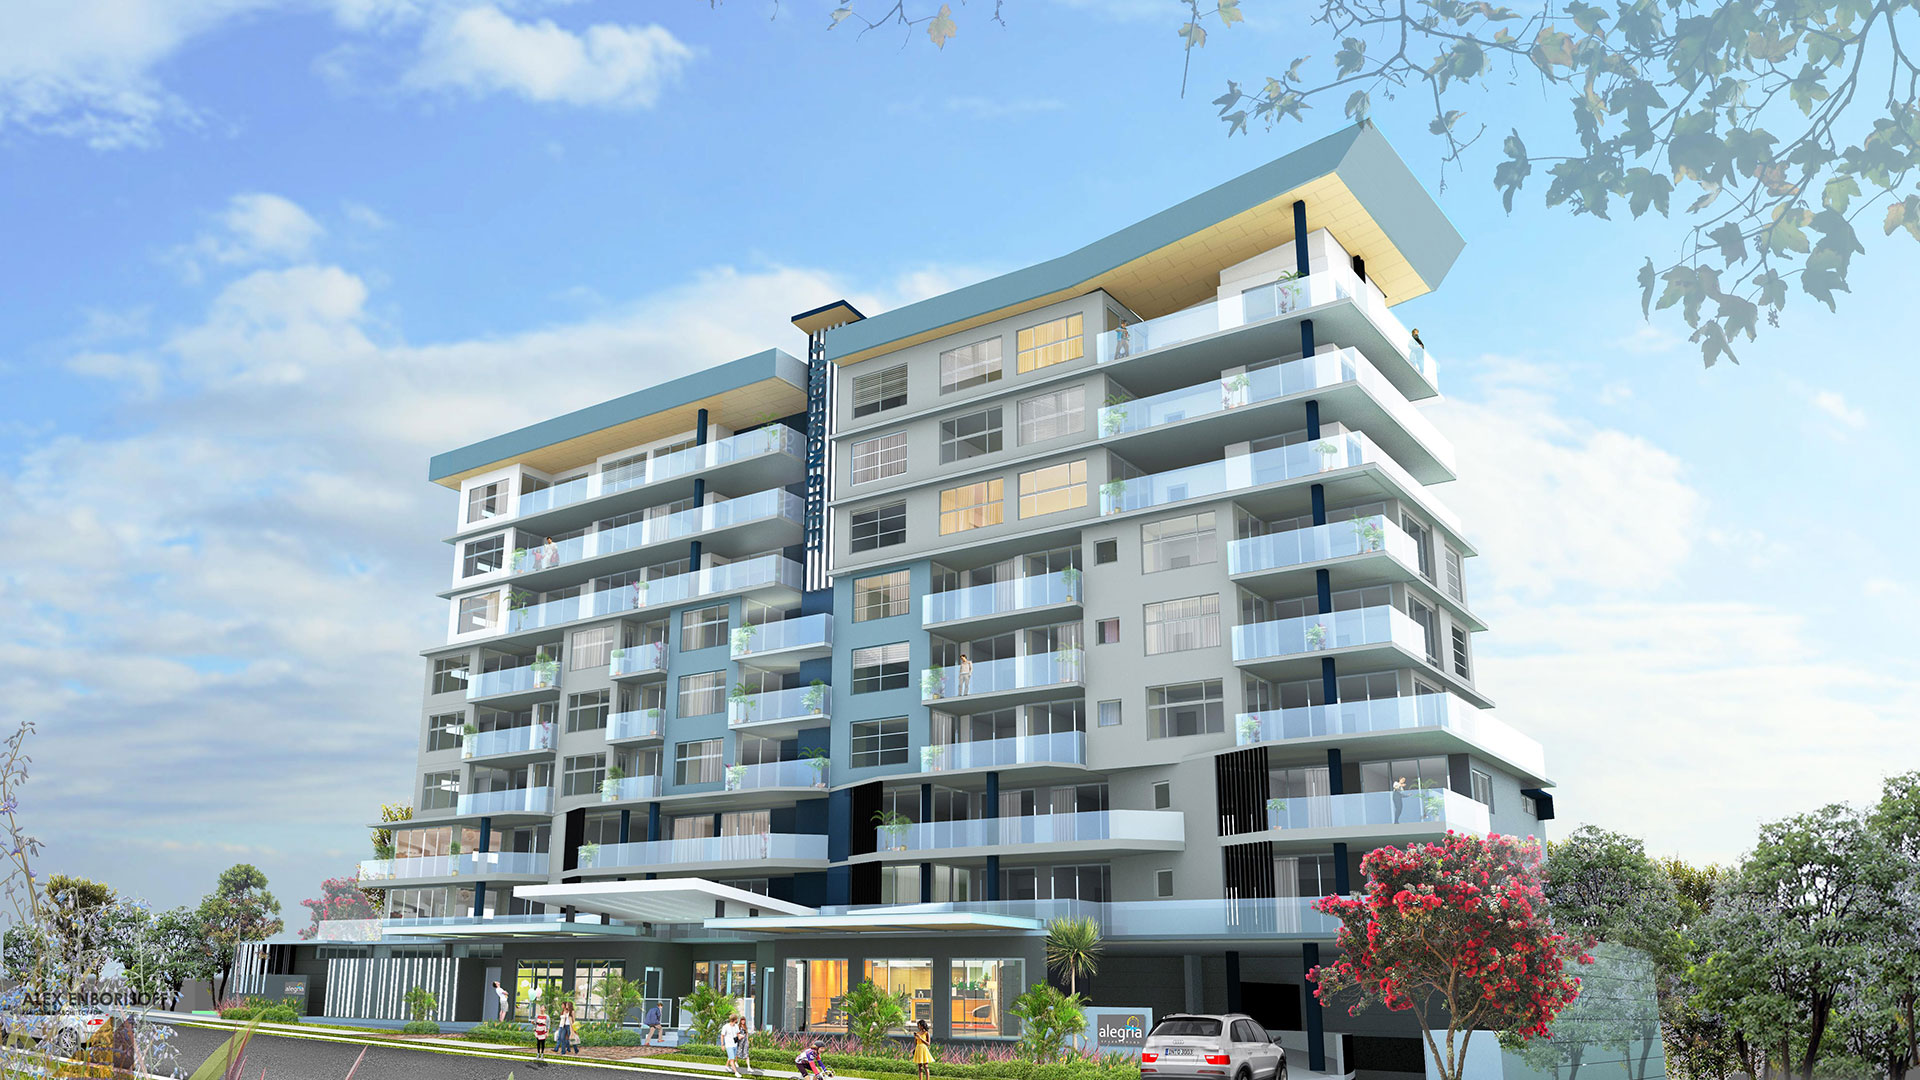 Image of a Redcliffe Property Development